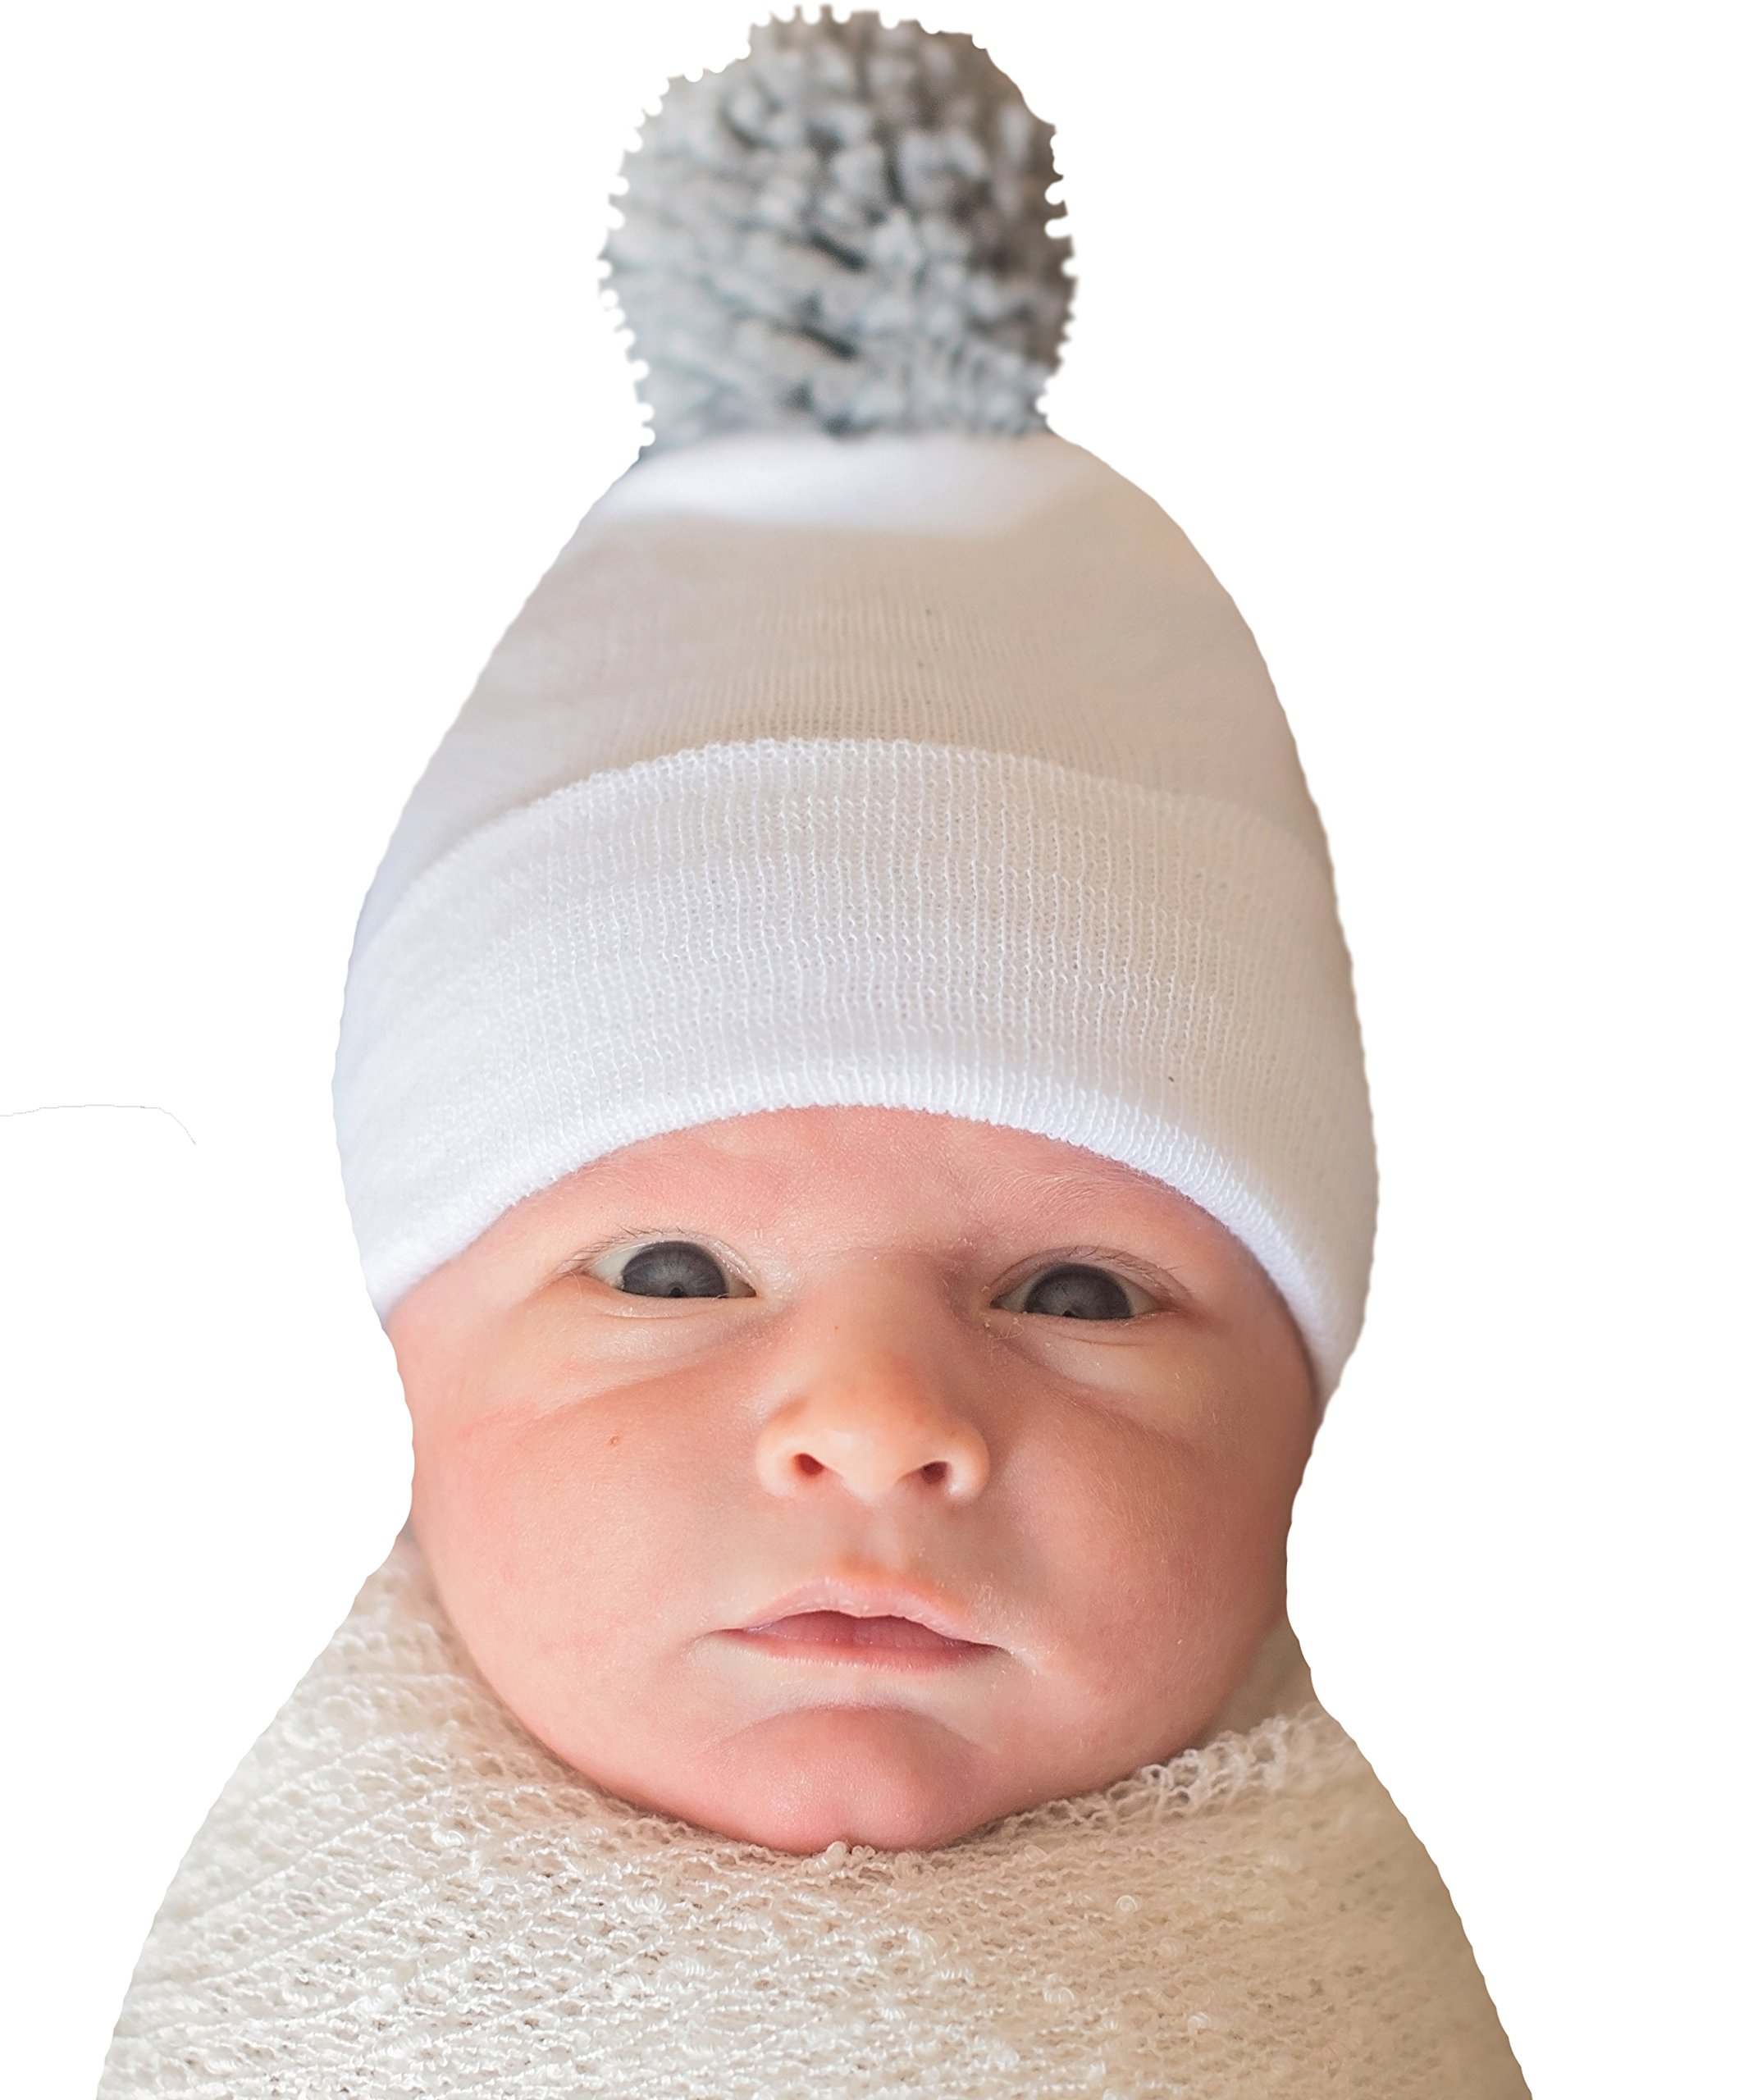 cce0c88912f7e Get Quotations · Melondipity White Hospital Hat with Grey Pom Pom Newborn  Boy Hospital Hat